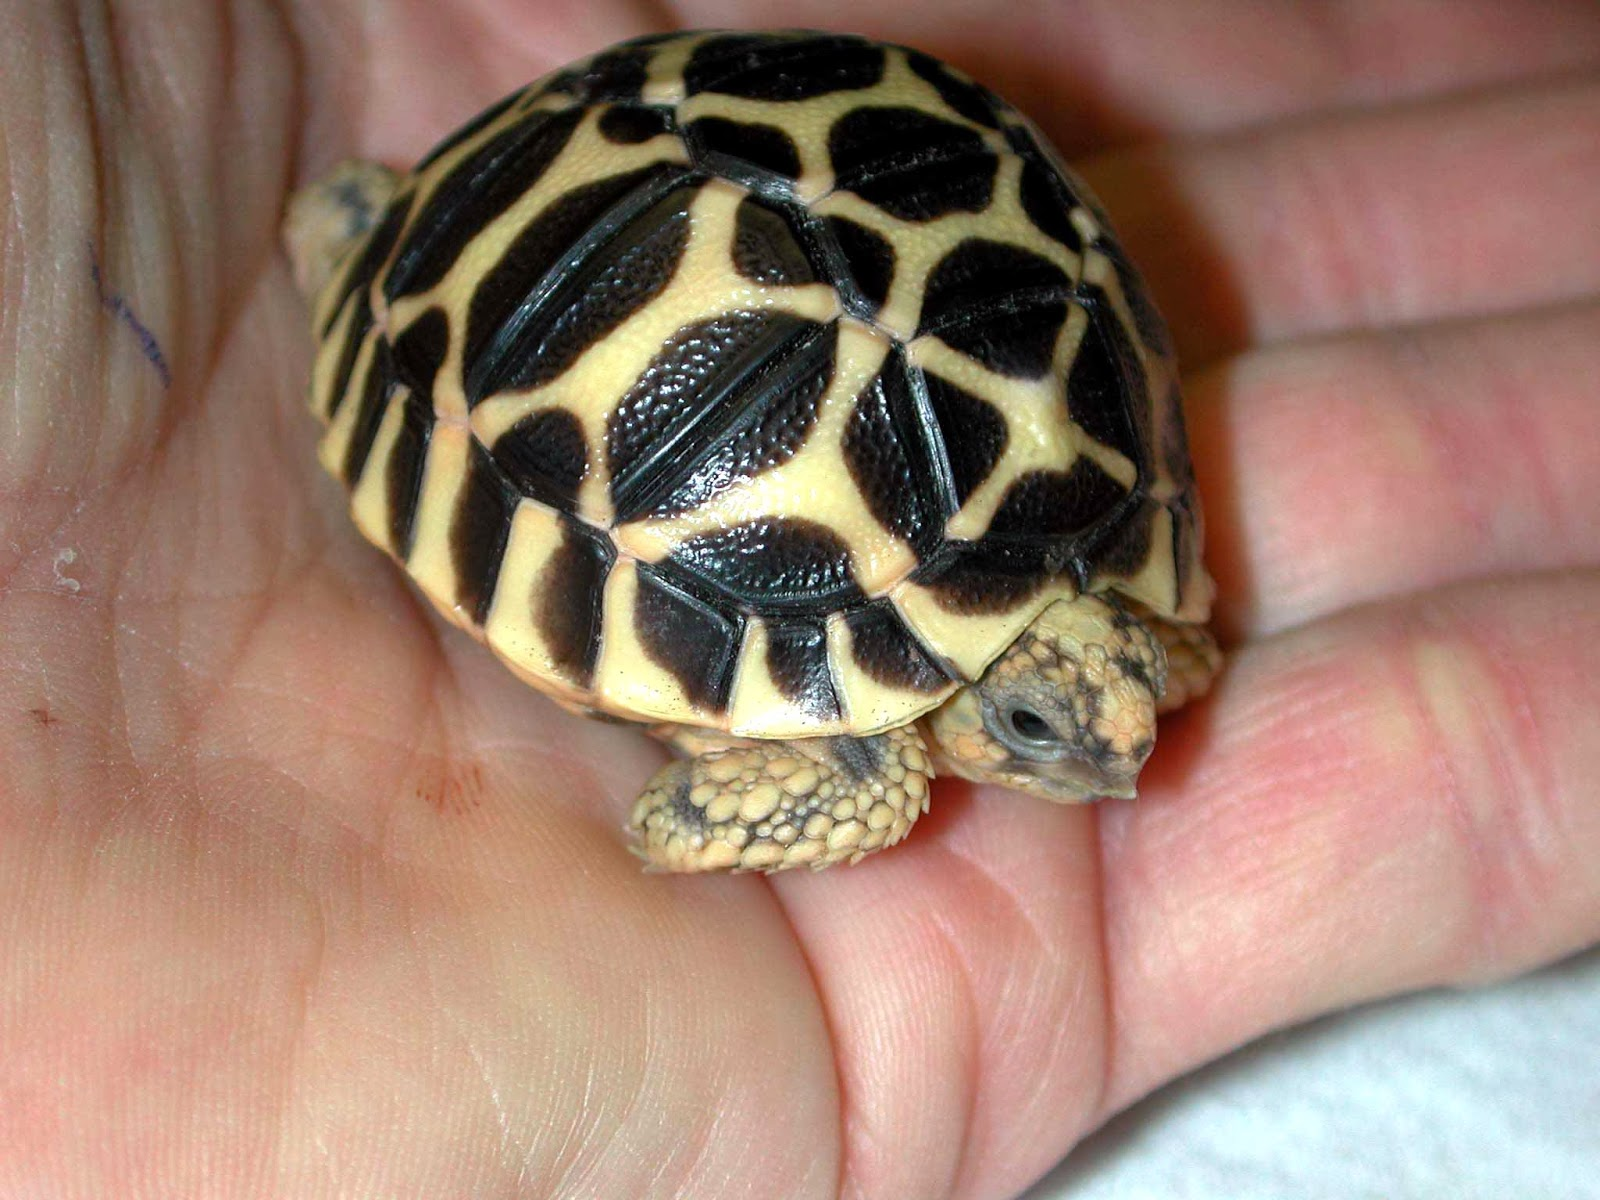 Indian Star Tortoise clipart #14, Download drawings